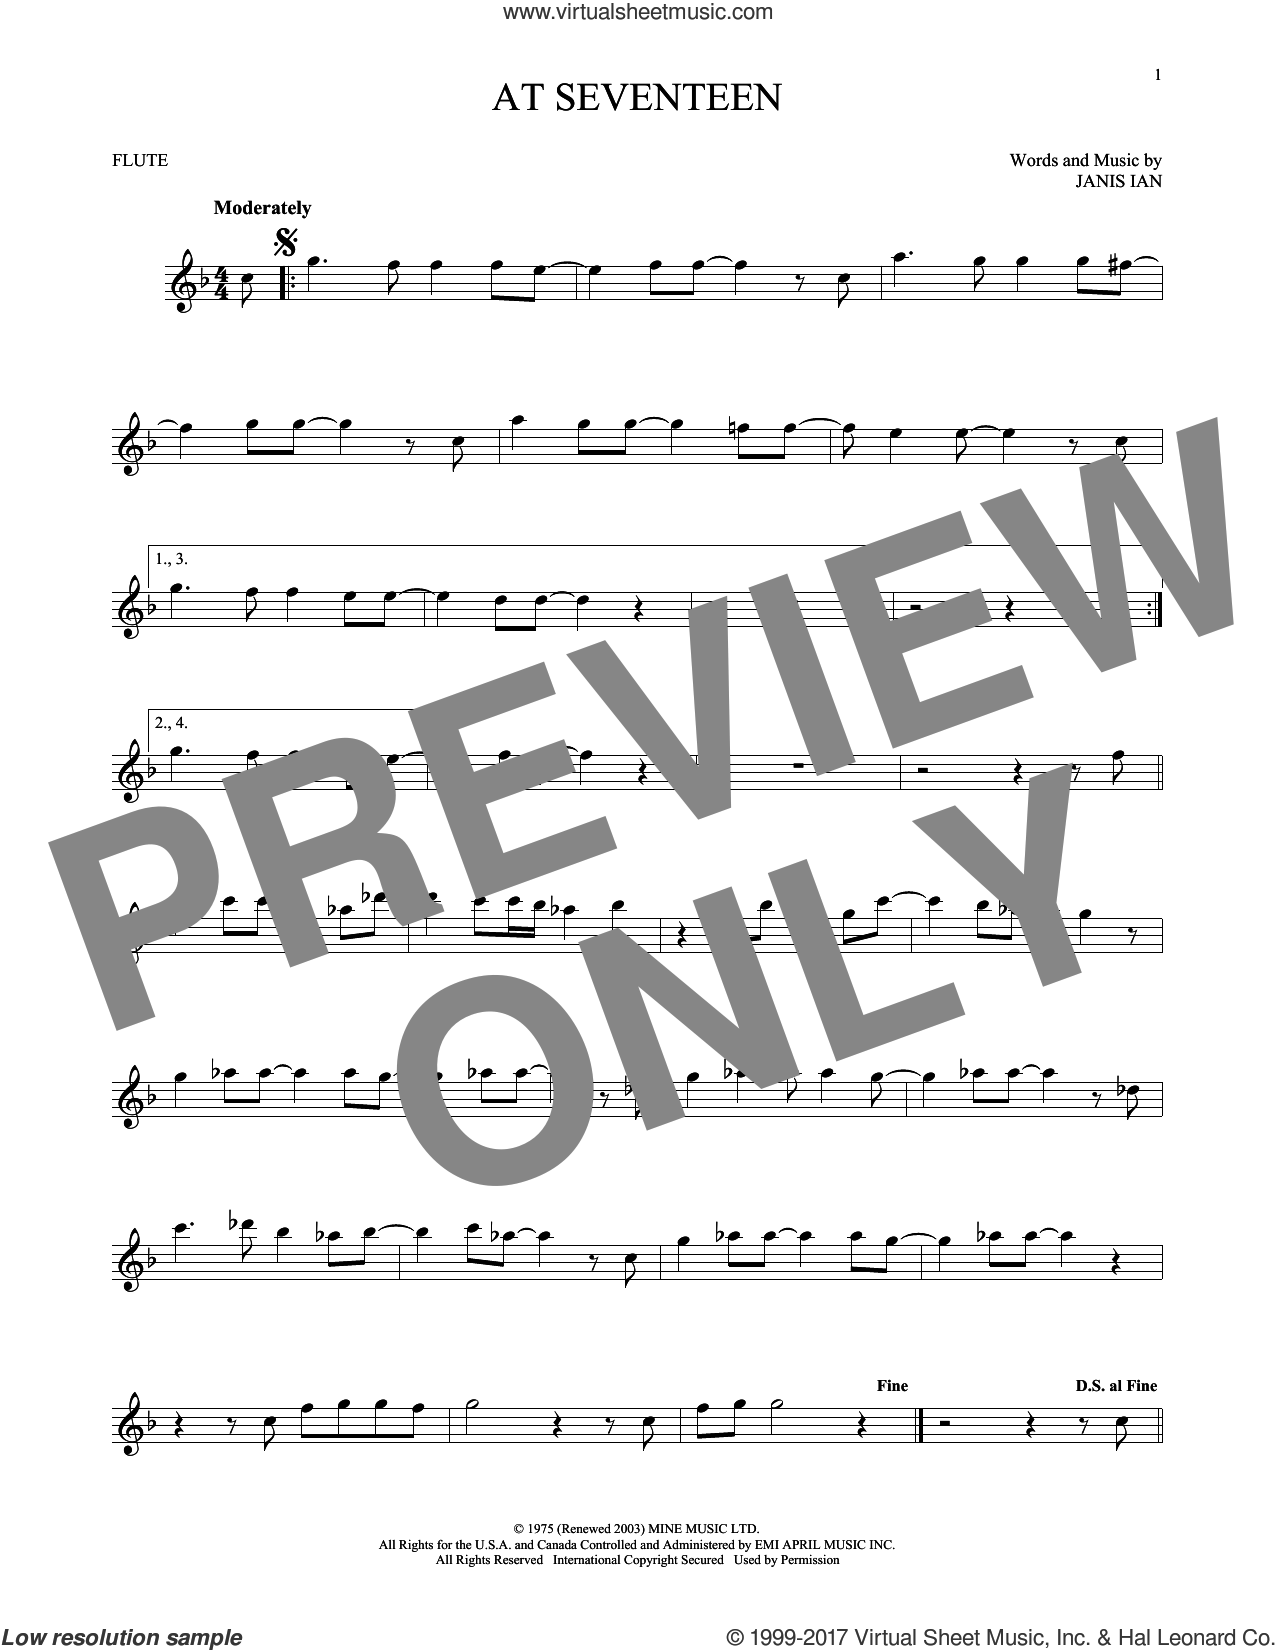 At Seventeen sheet music for flute solo by Janis Ian, intermediate skill level